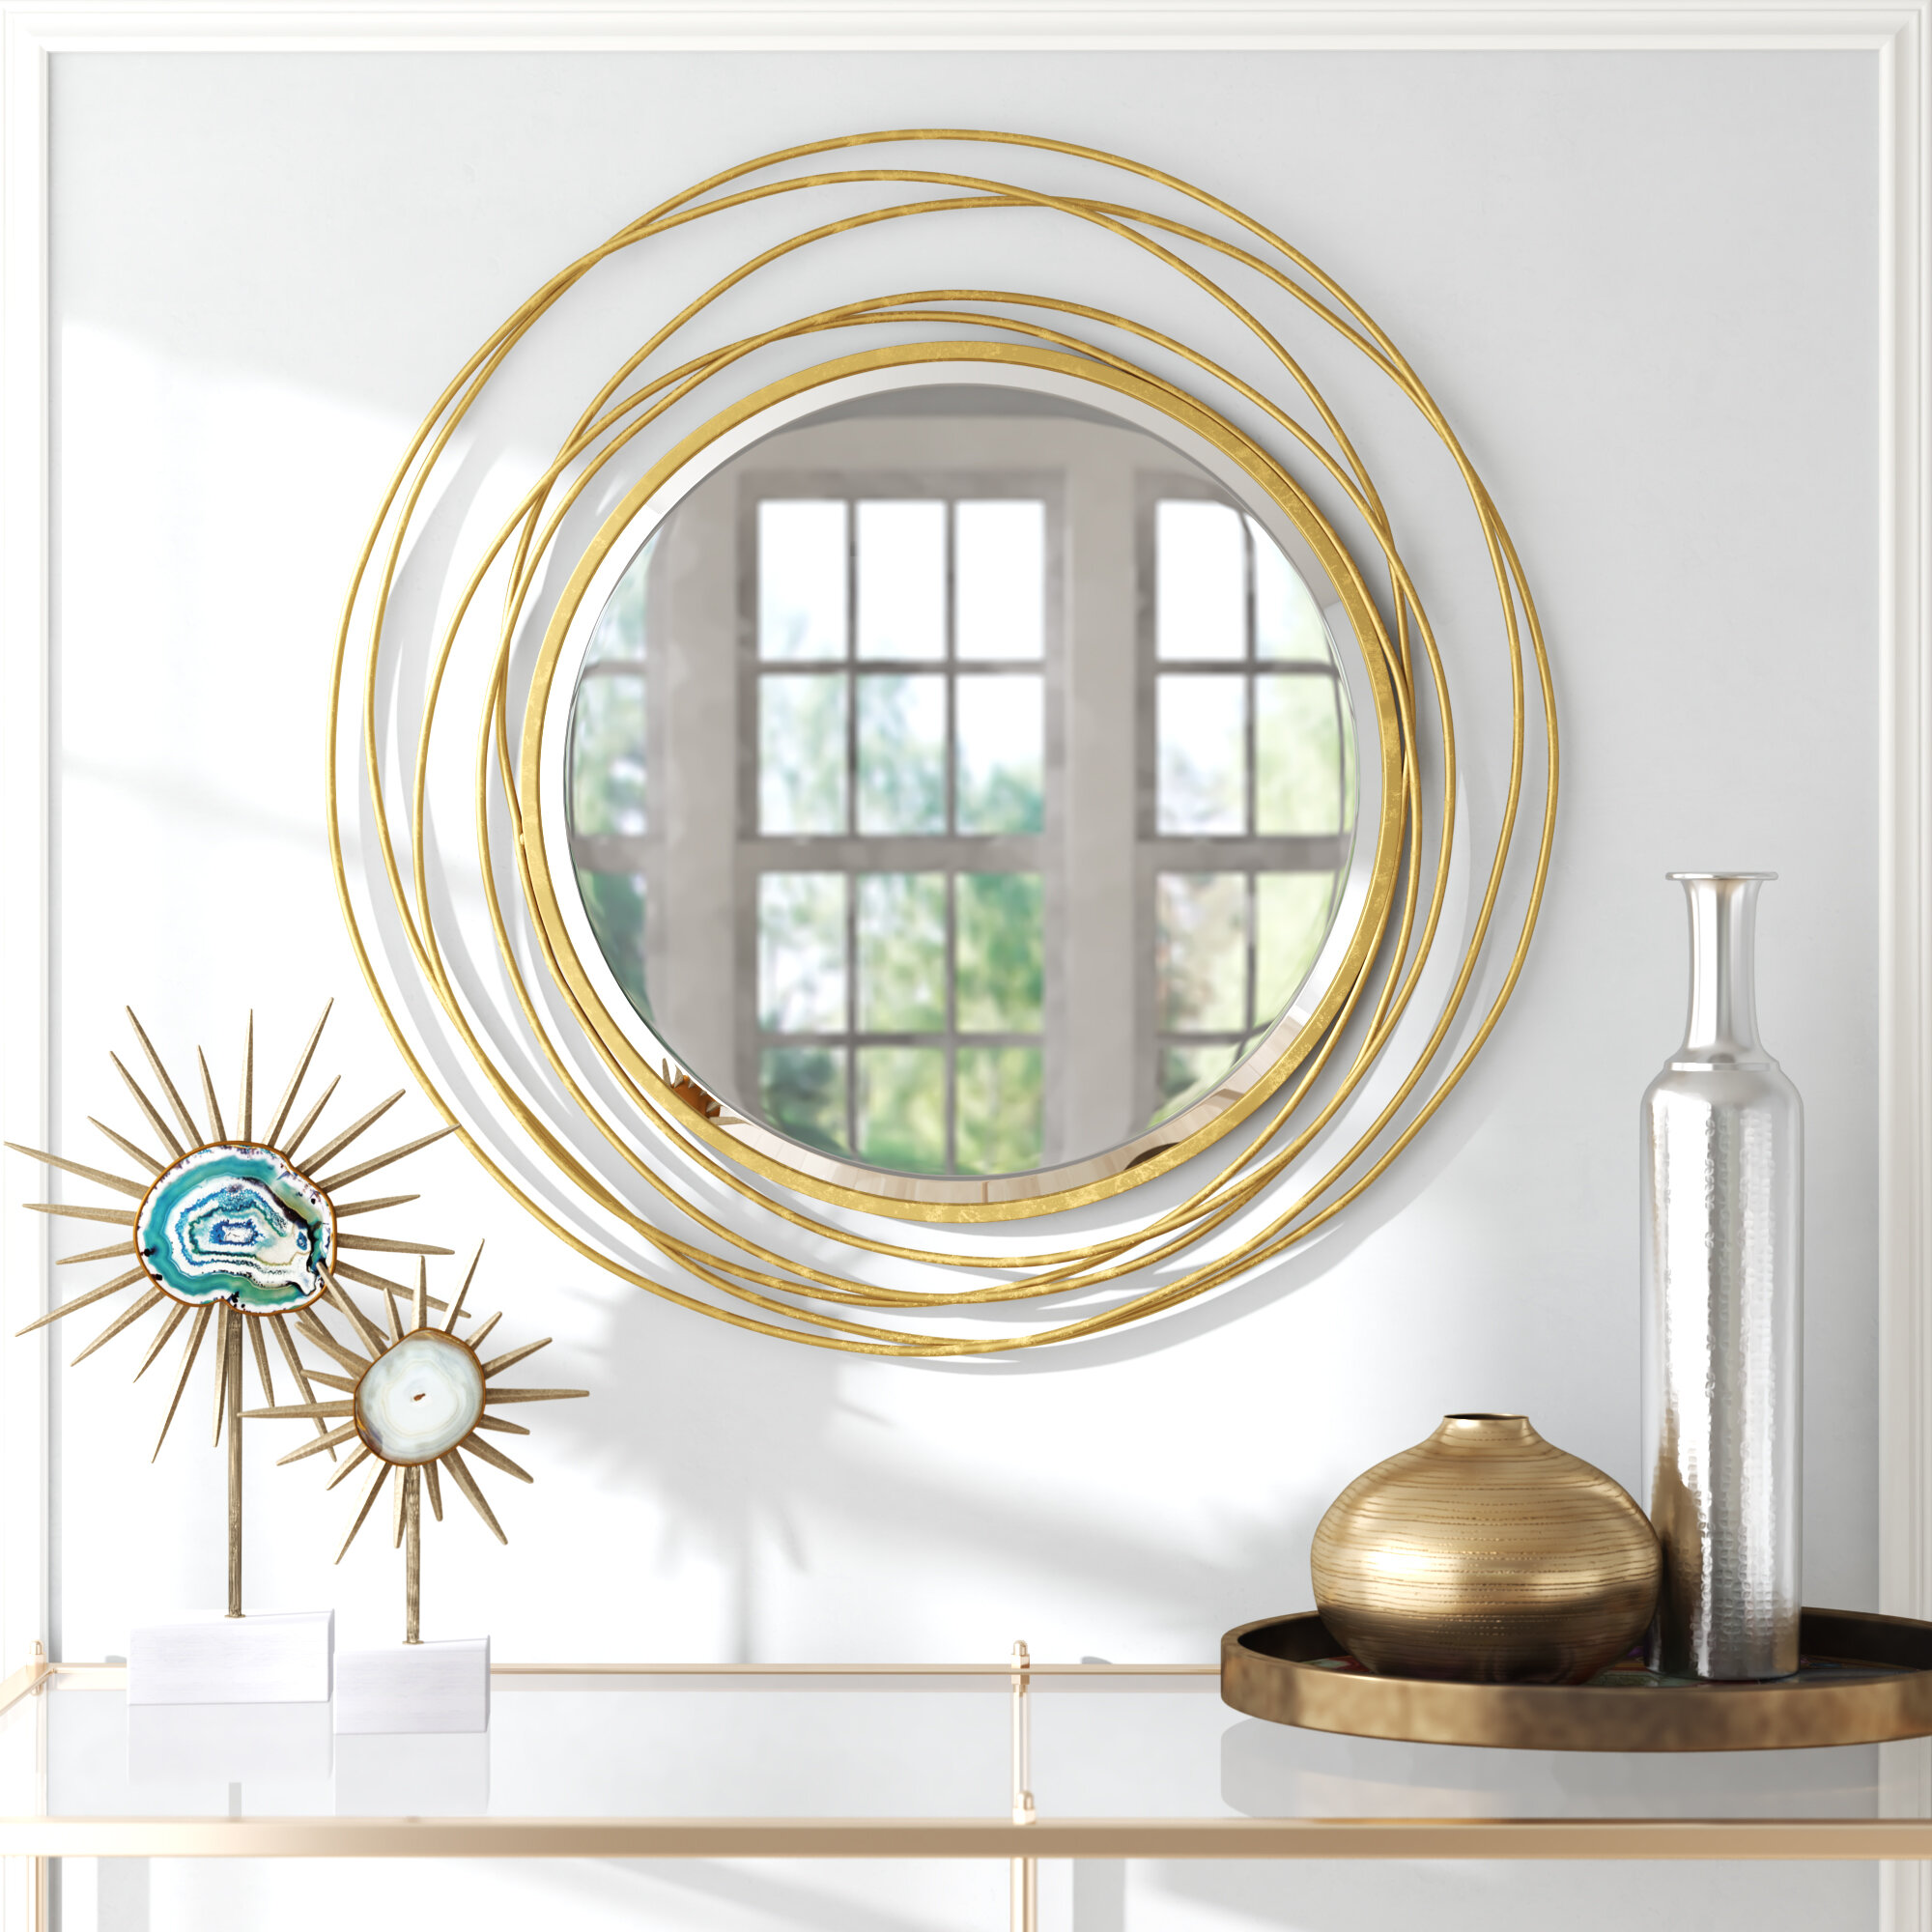 32 Pieces Round Circle Mirror Setting Wall Sticker Decor For Living Room Porch Children S Bedroom Child Decor Decals Stickers Vinyl Art Decor Decals Stickers Vinyl Art